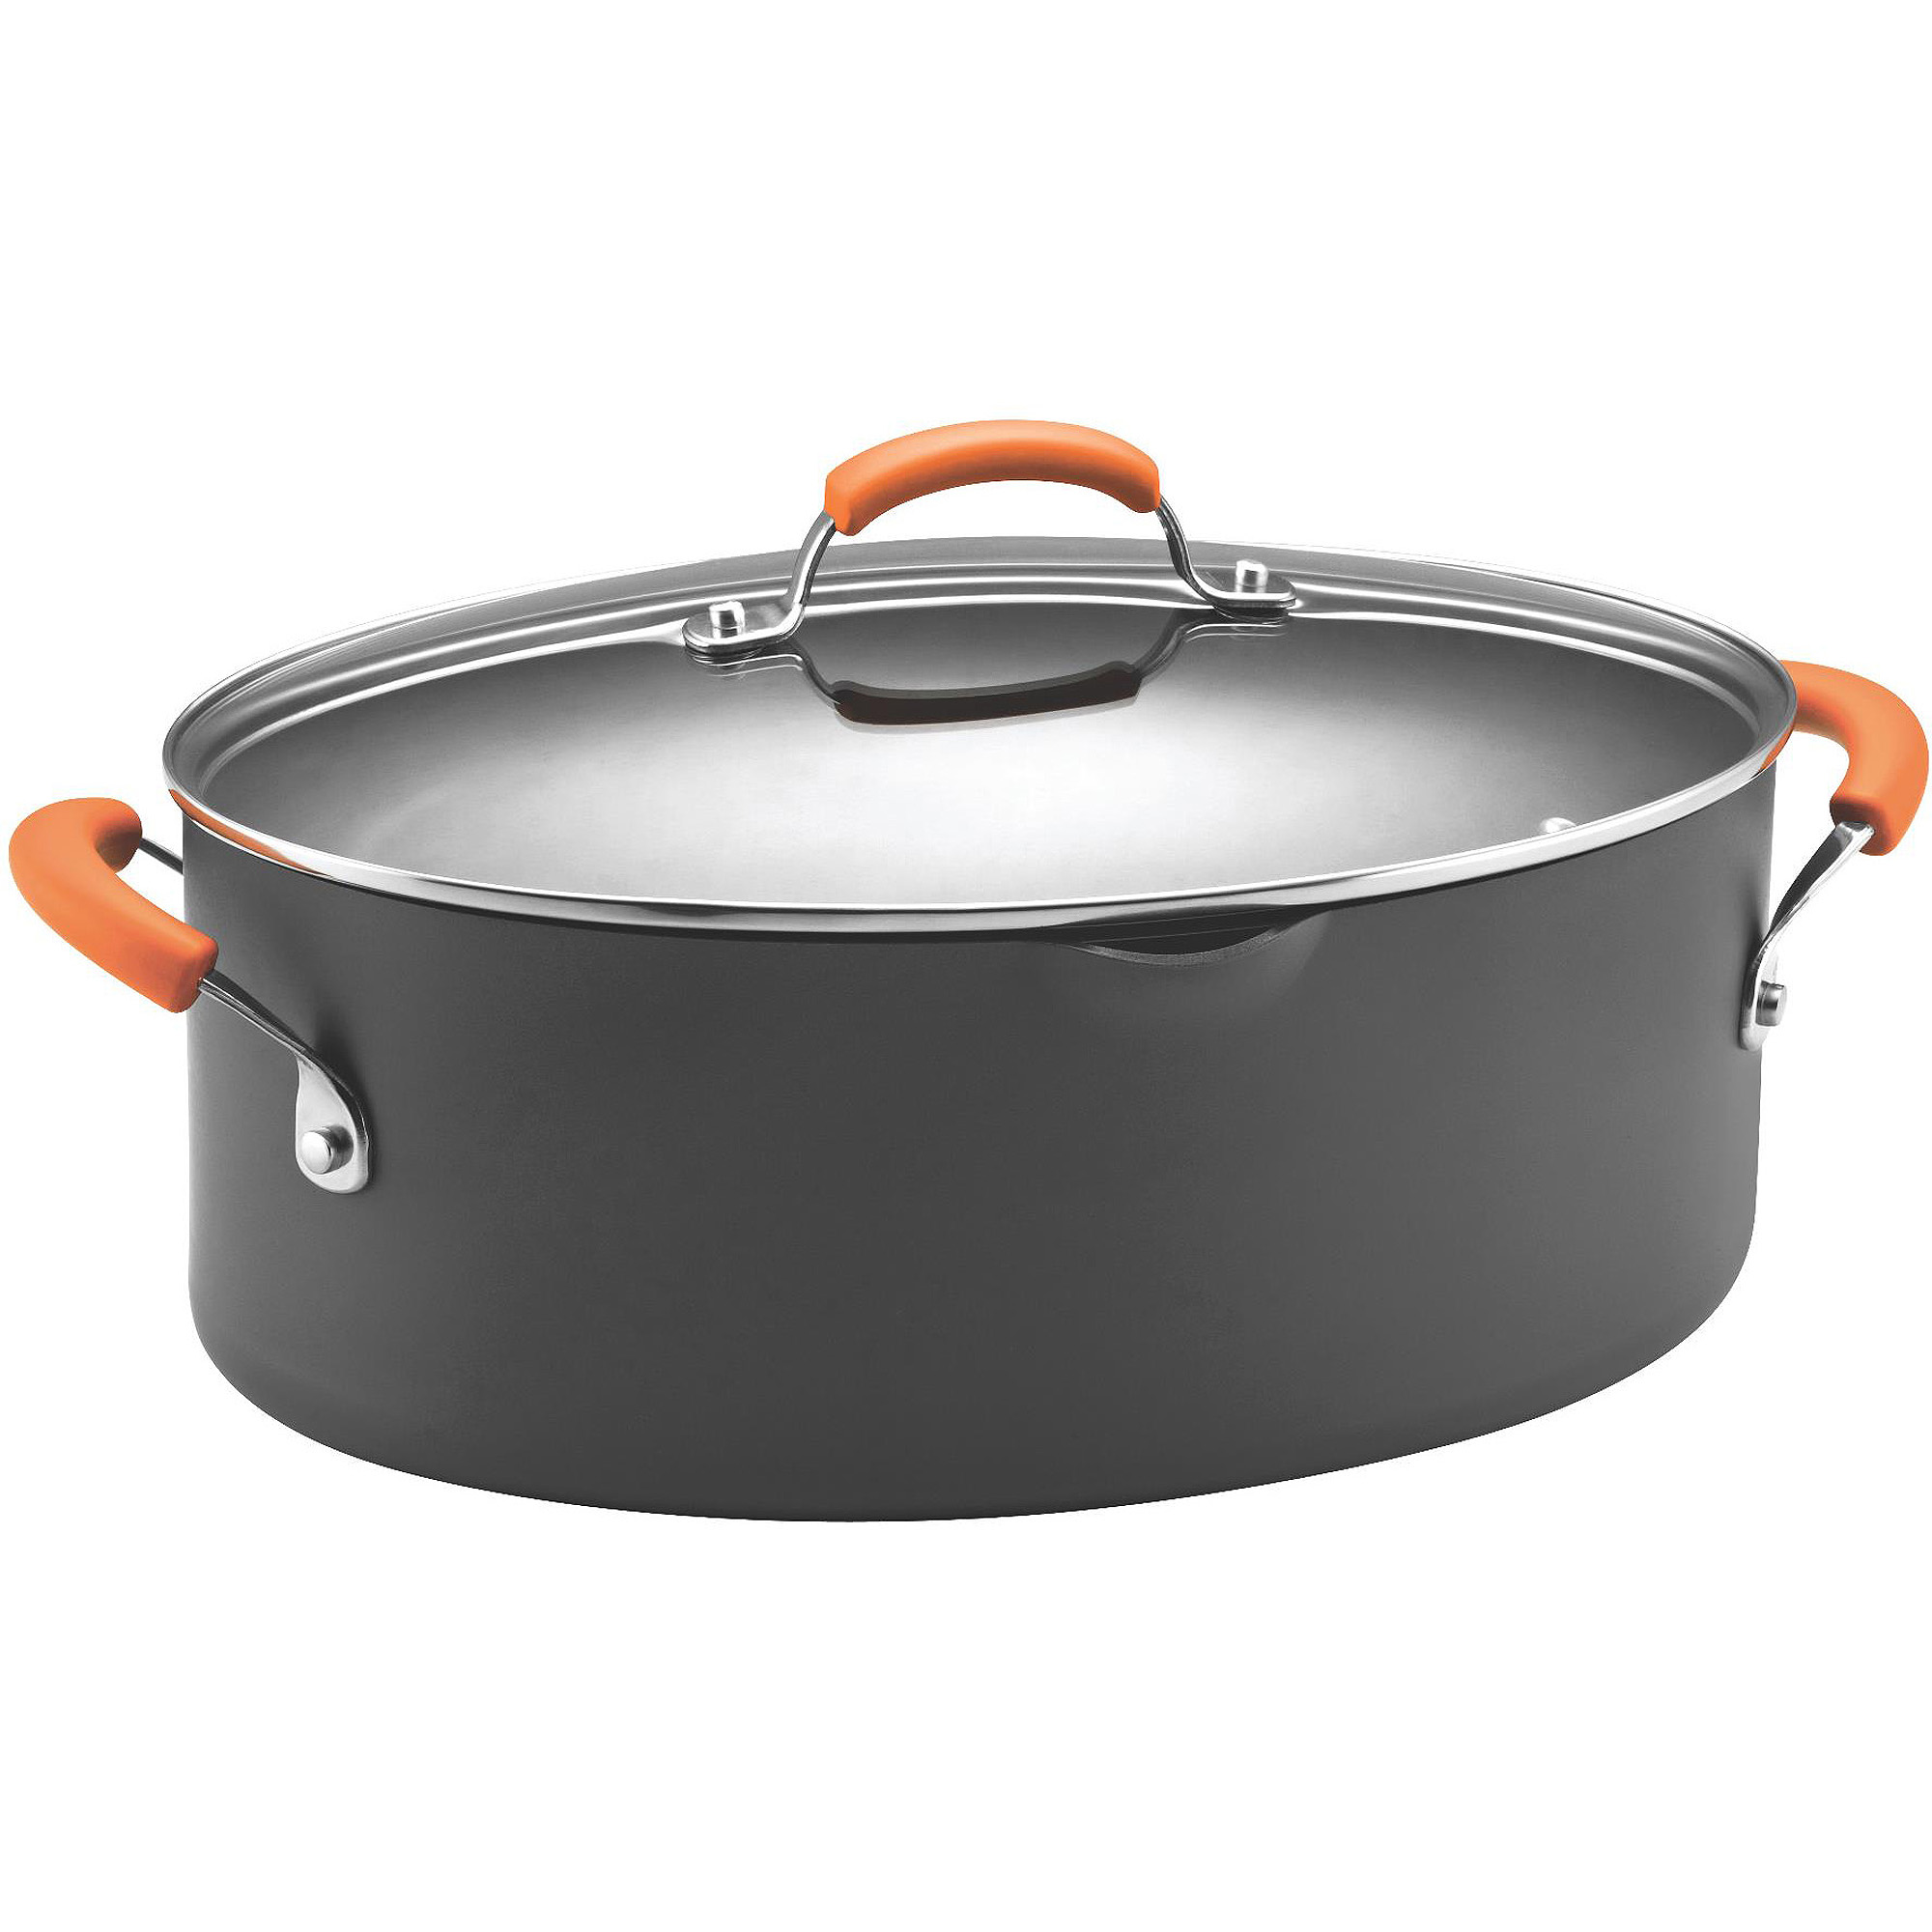 rachael ray hard anodized ii nonstick dishwasher safe 8-quart covered oval pasta pot, orange